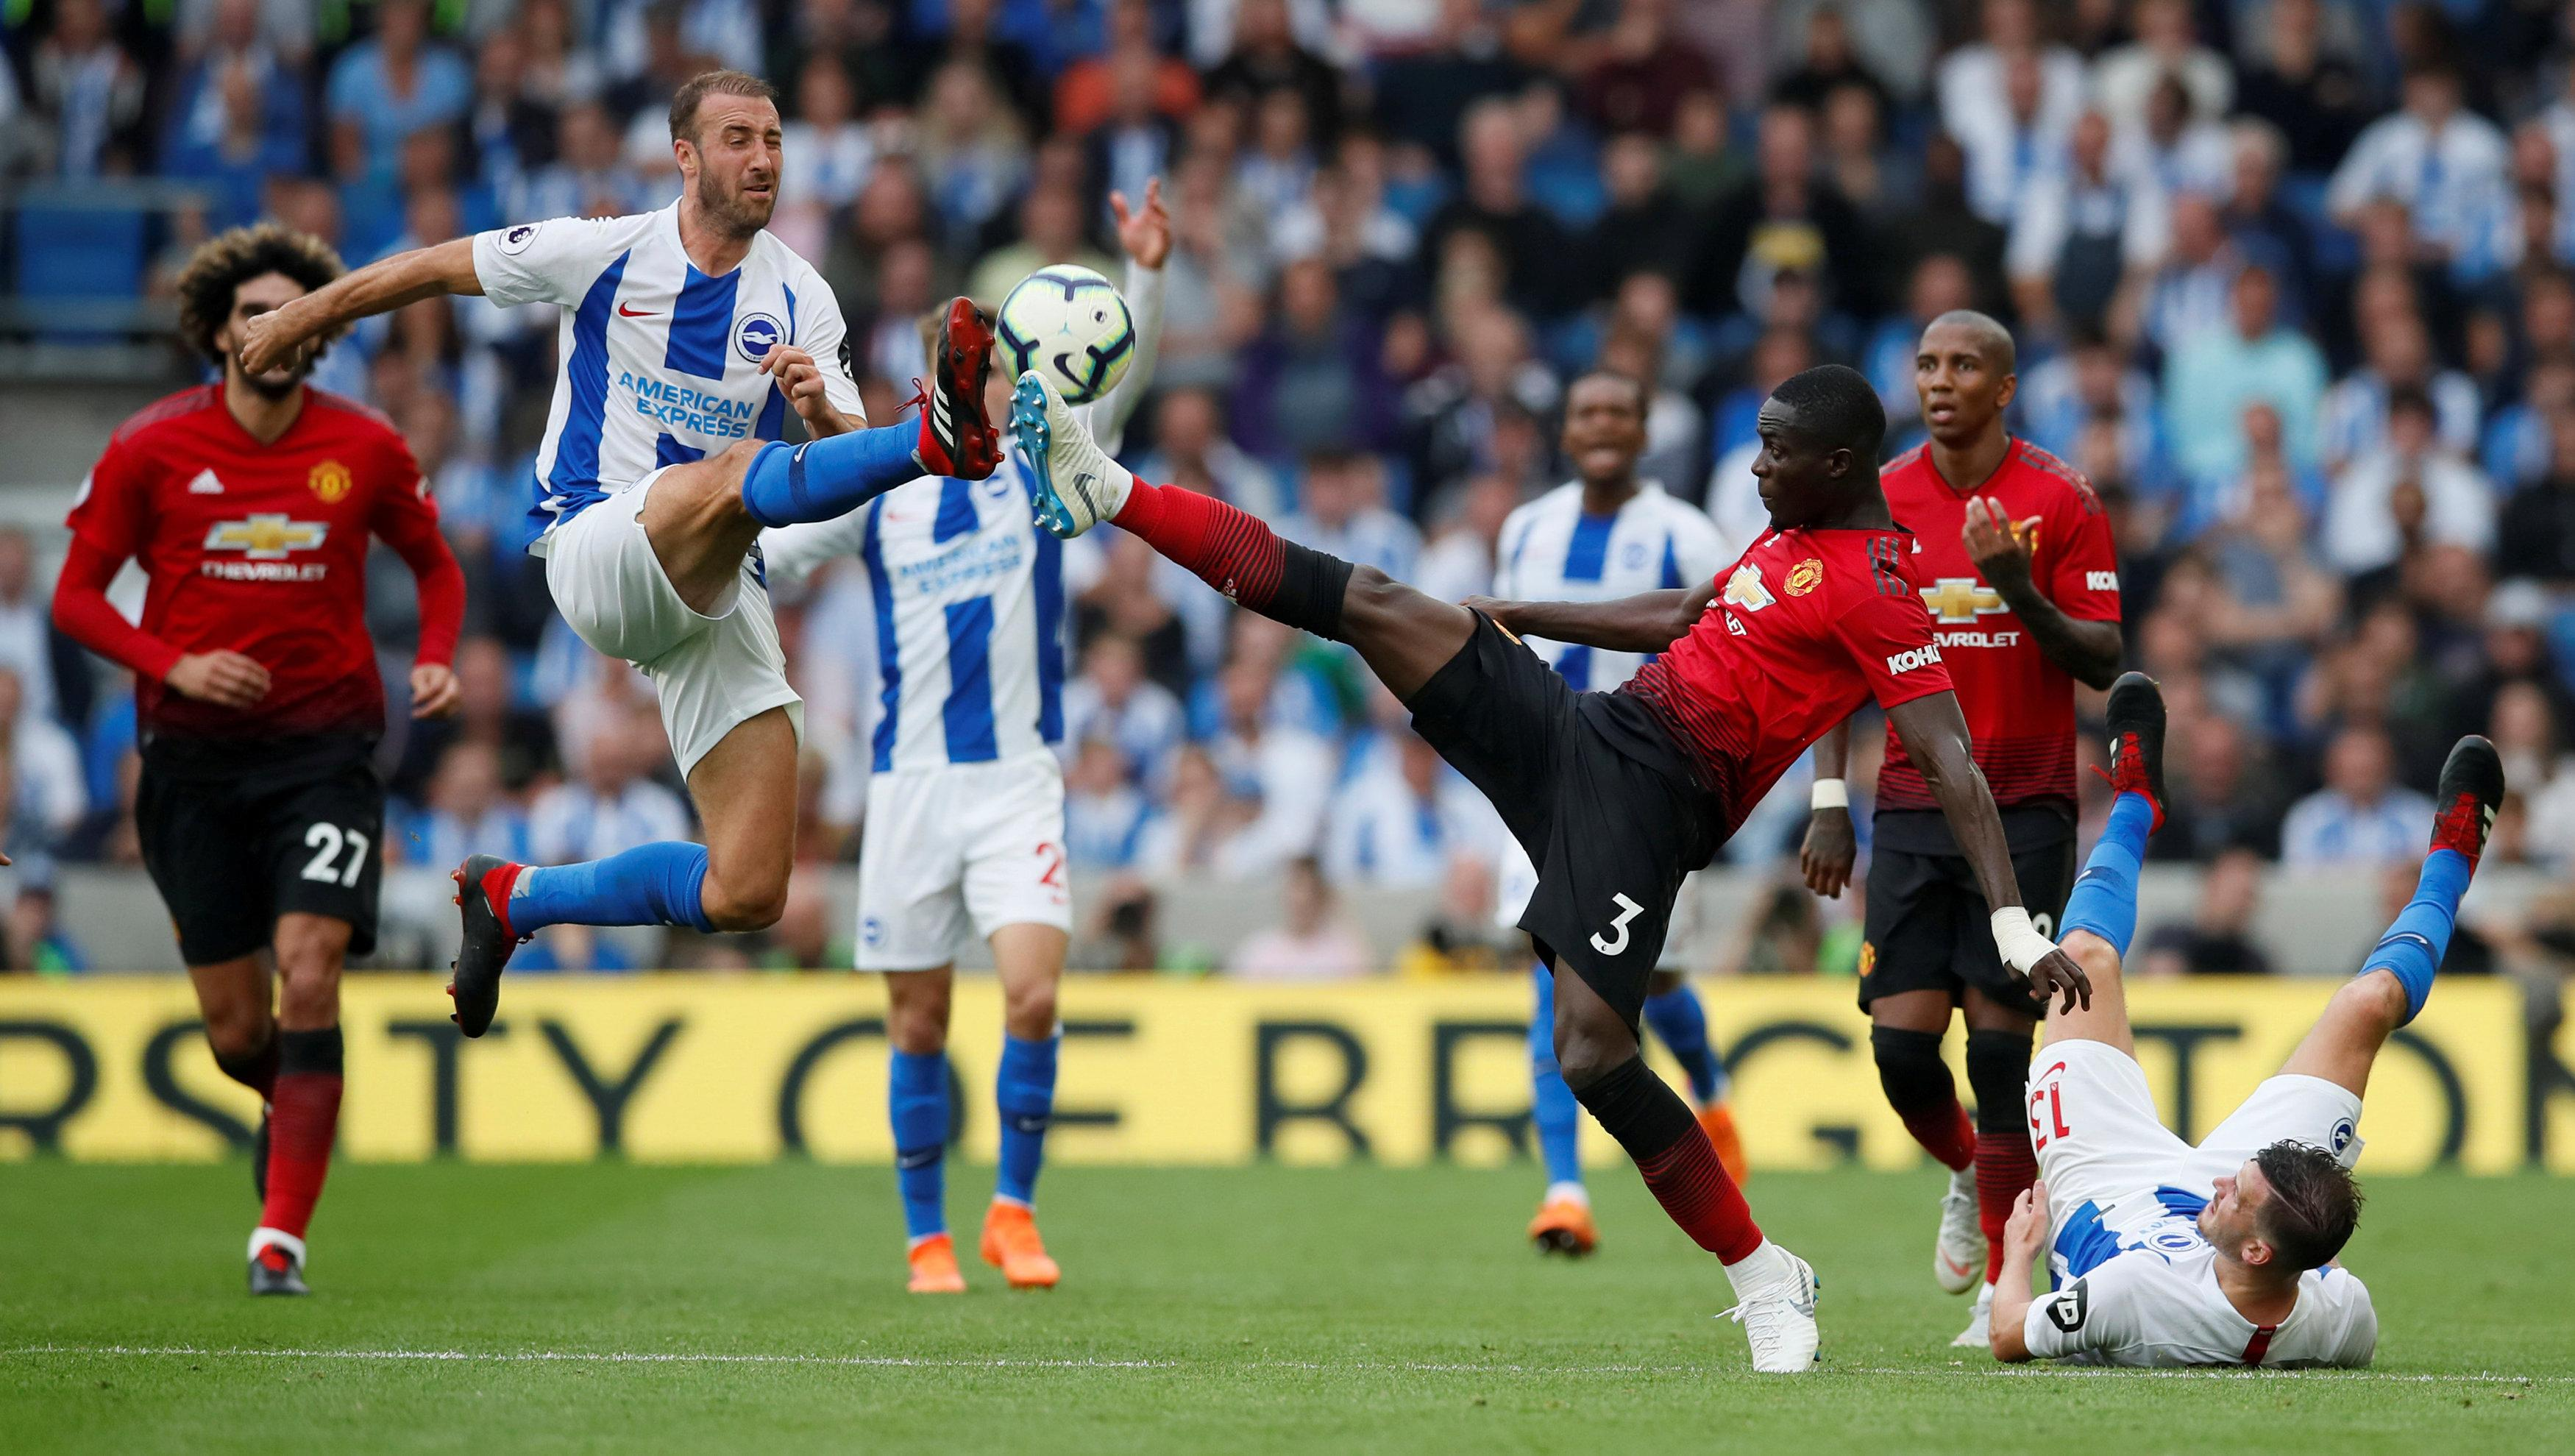 Brighton gave Manchester United defender Eric Bailly nightmares